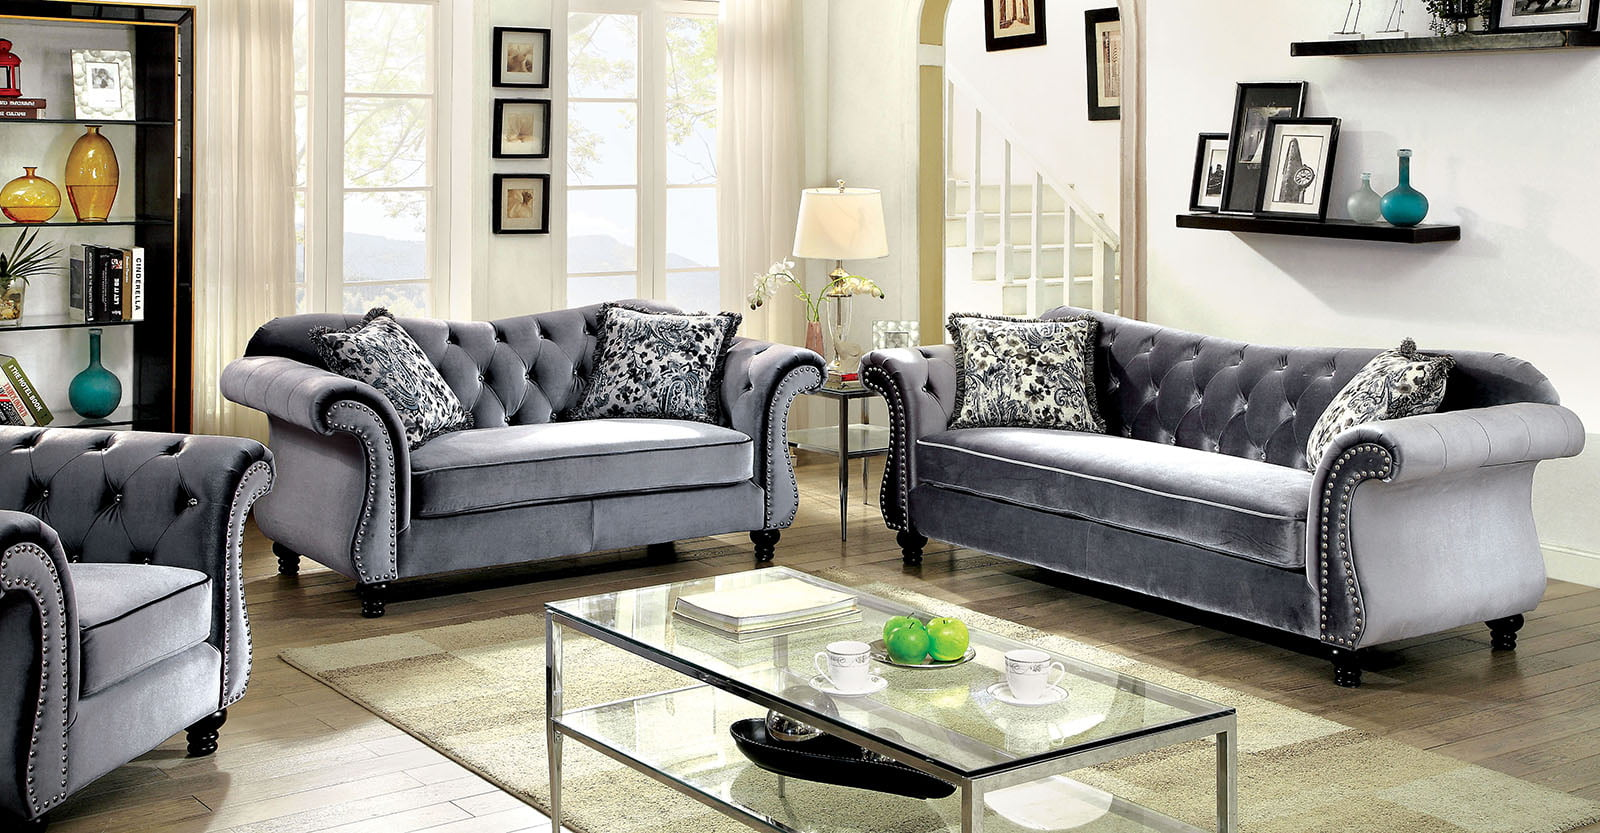 Luxurious Jolanda Sofa Set Sofa And Loveseat Grey Traditional ...